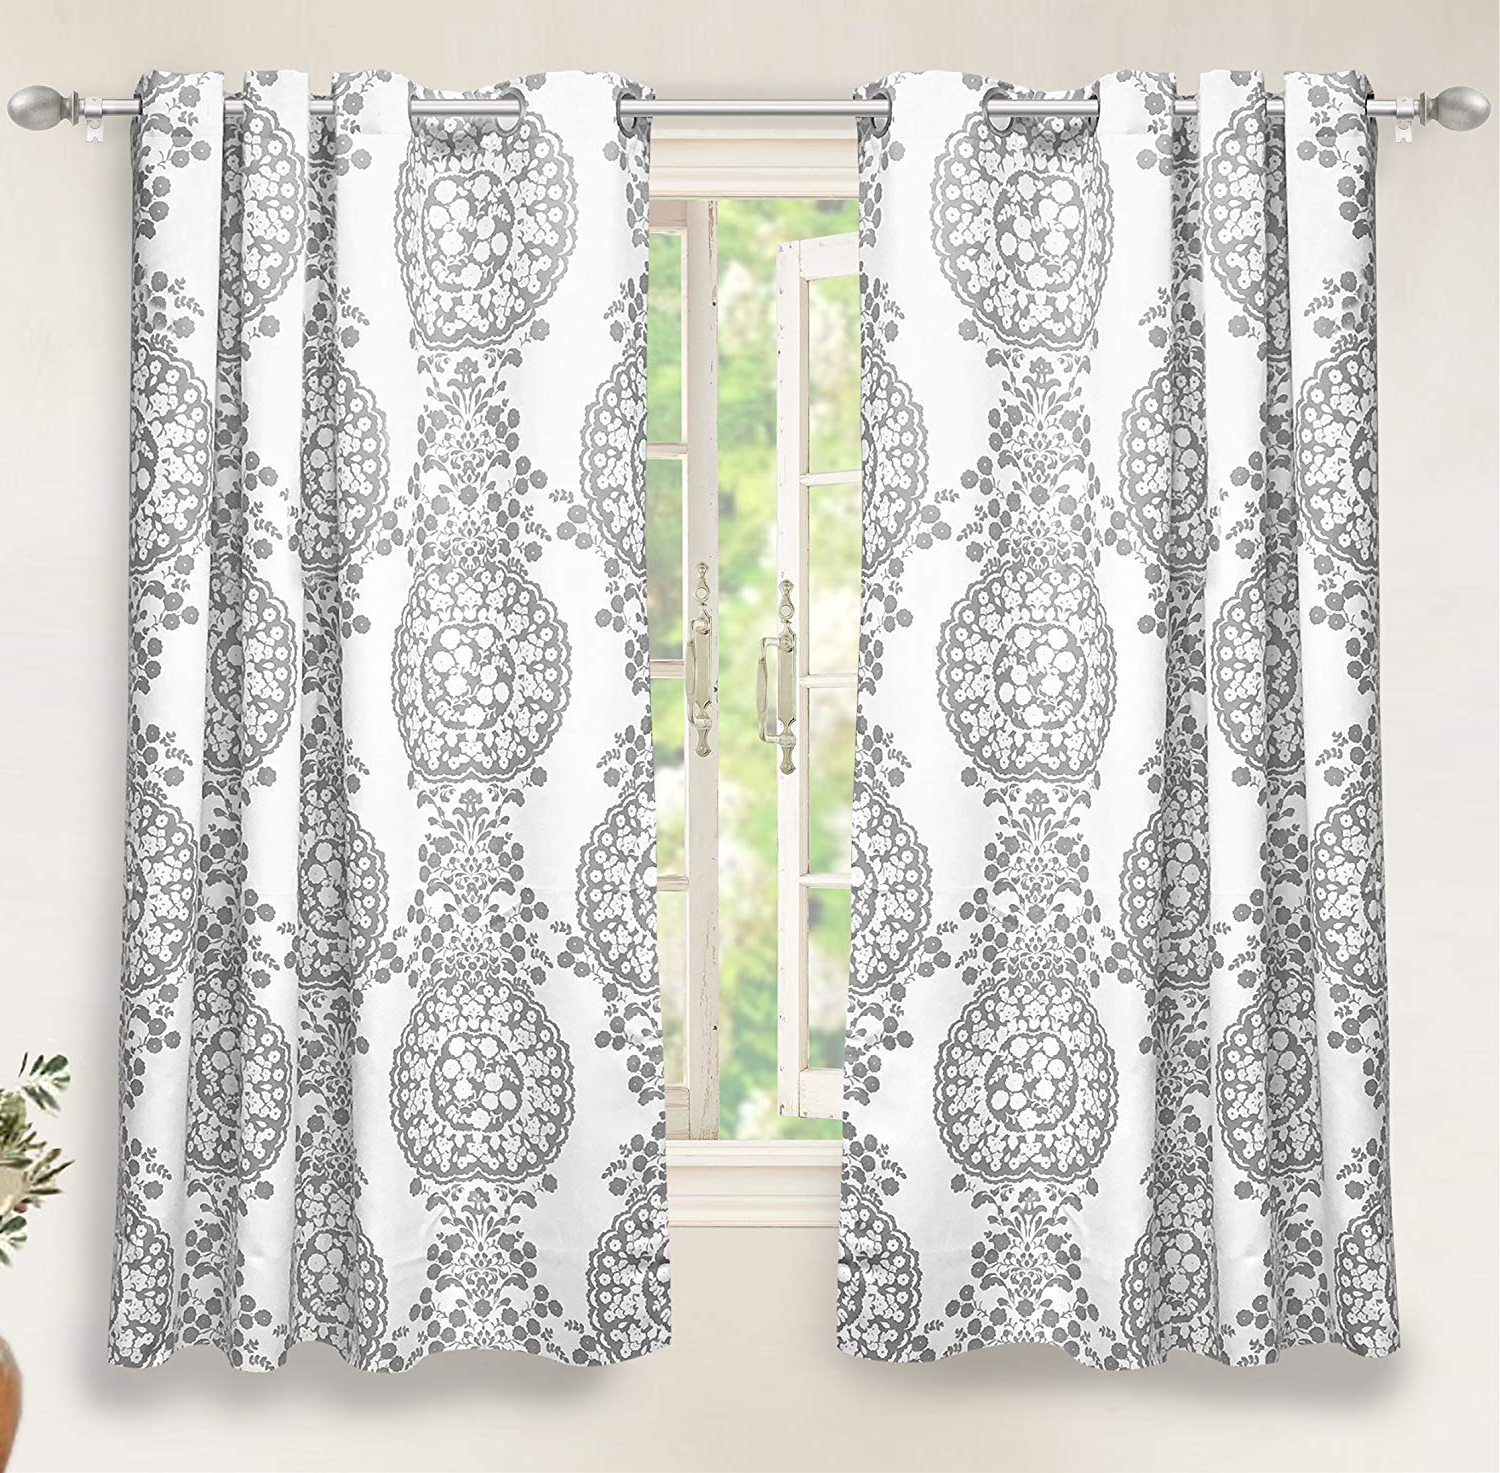 Best And Newest Driftaway Samantha Thermal Room Darkening Grommet Unlined Window Curtains Floral Damask Medallion Pattern 2 Panels Each 52 Inch63 Inch Gray Within Pastel Damask Printed Room Darkening Kitchen Tiers (View 5 of 20)